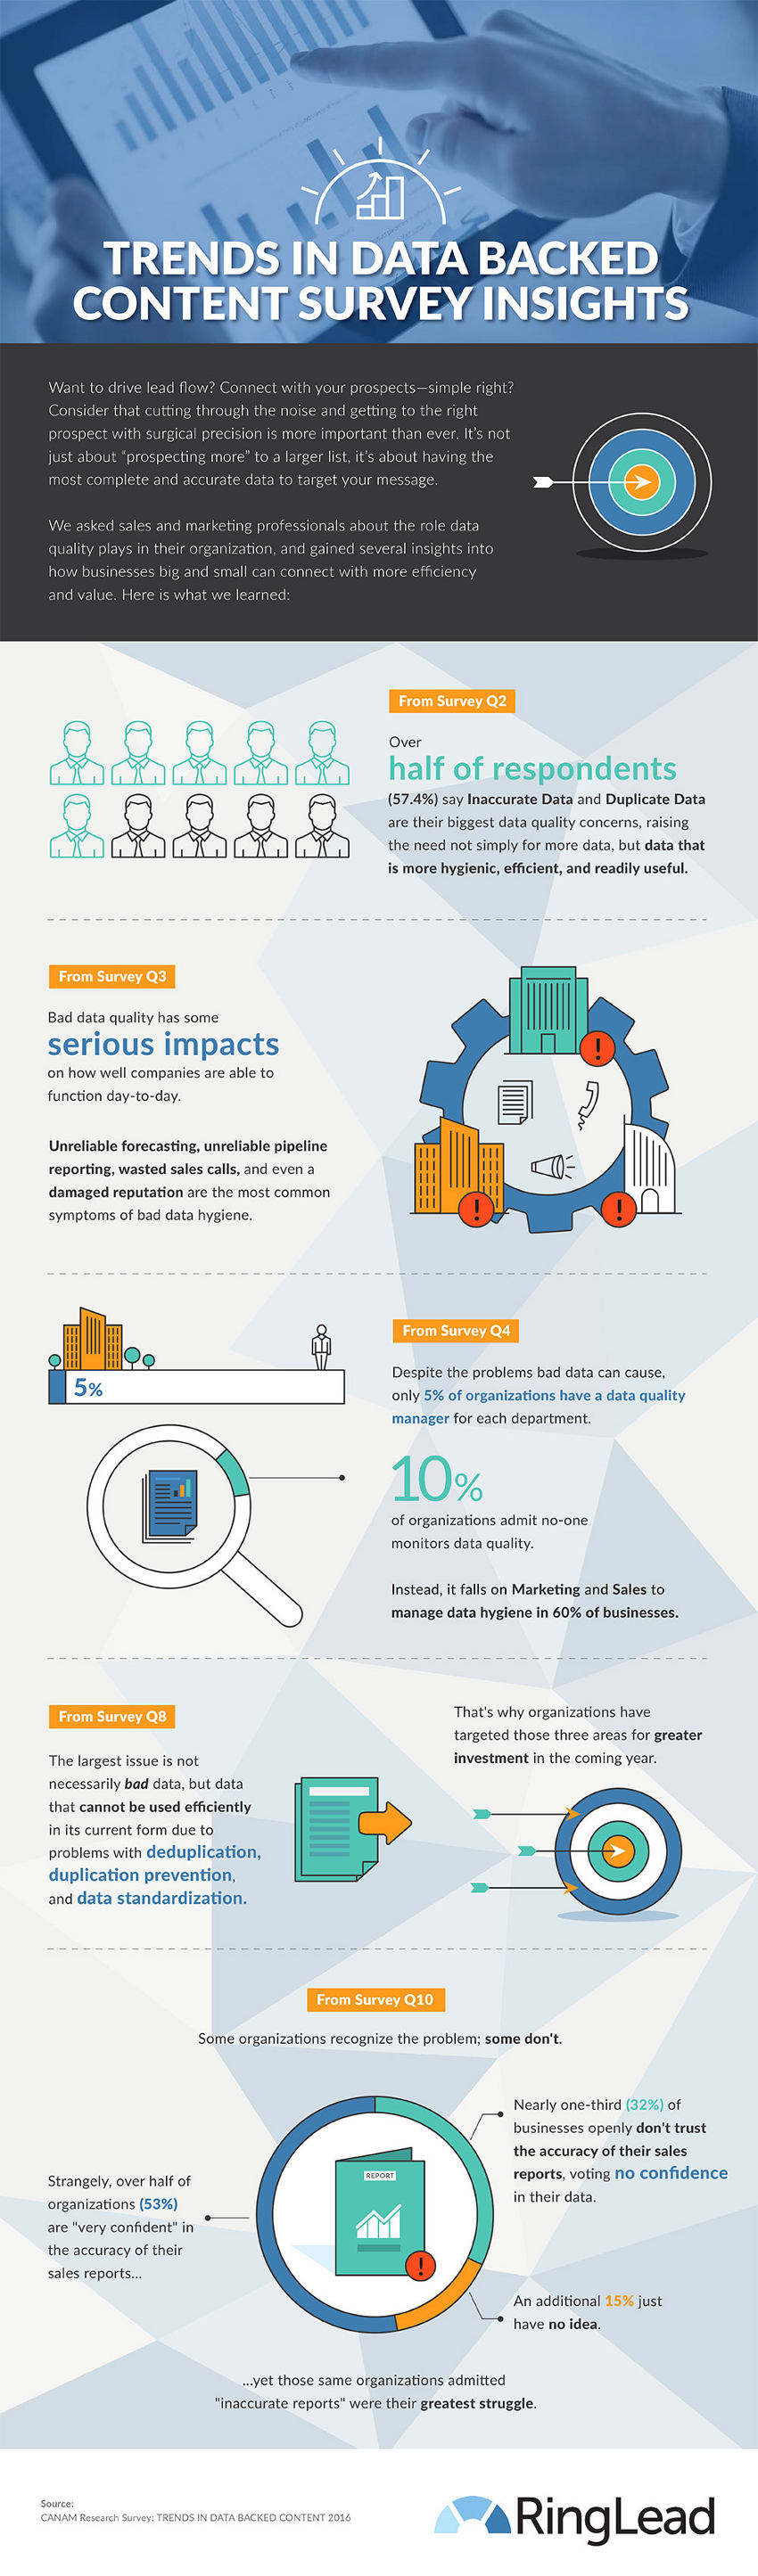 trends-in-data-backed-content-survey-insights-ringlead-infographic